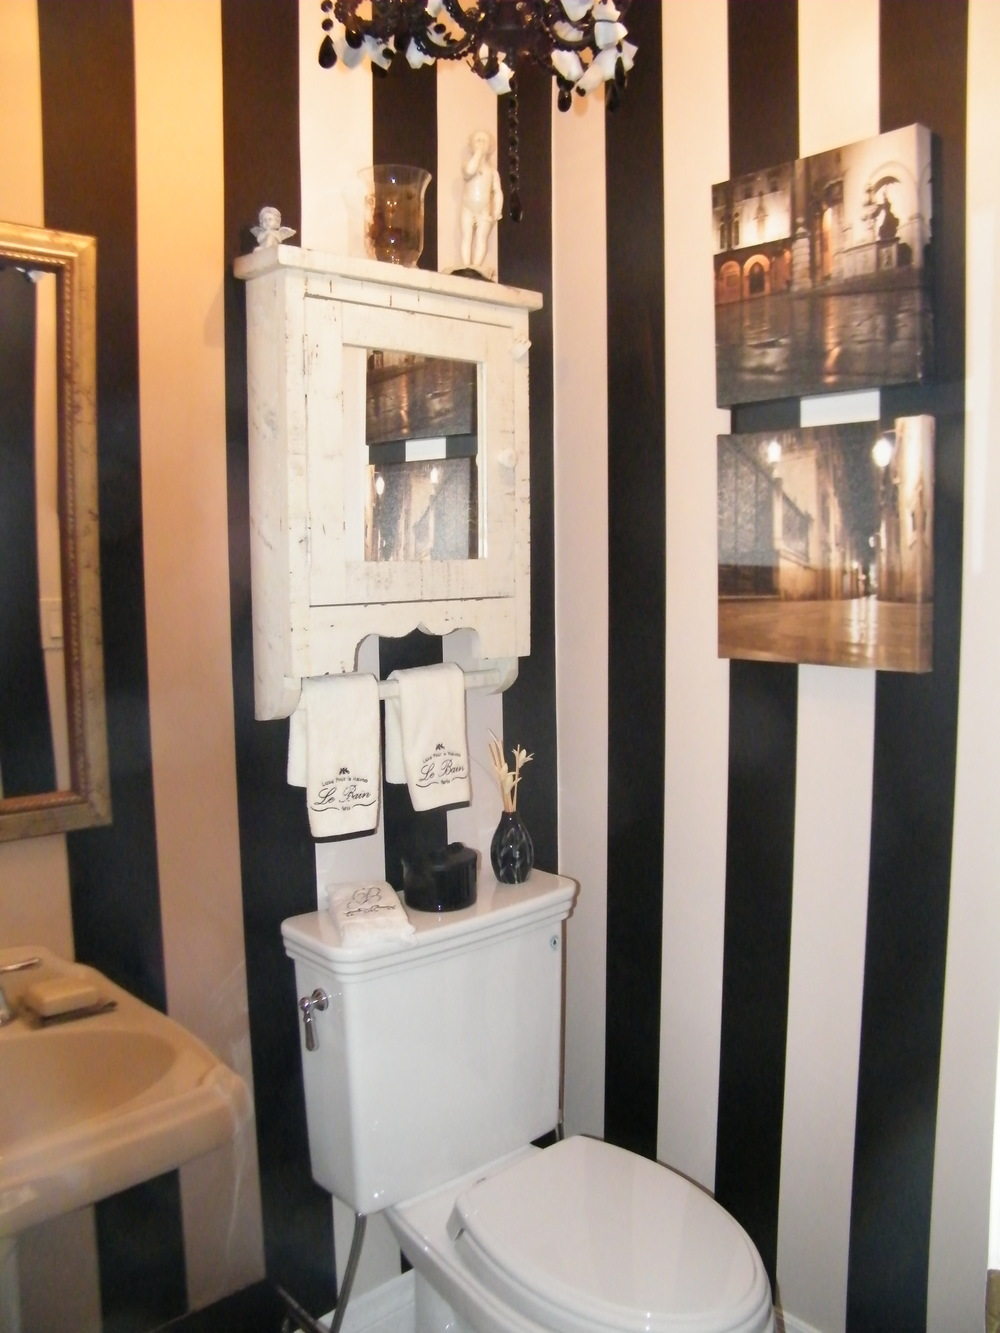 Townhouse - Powder Room